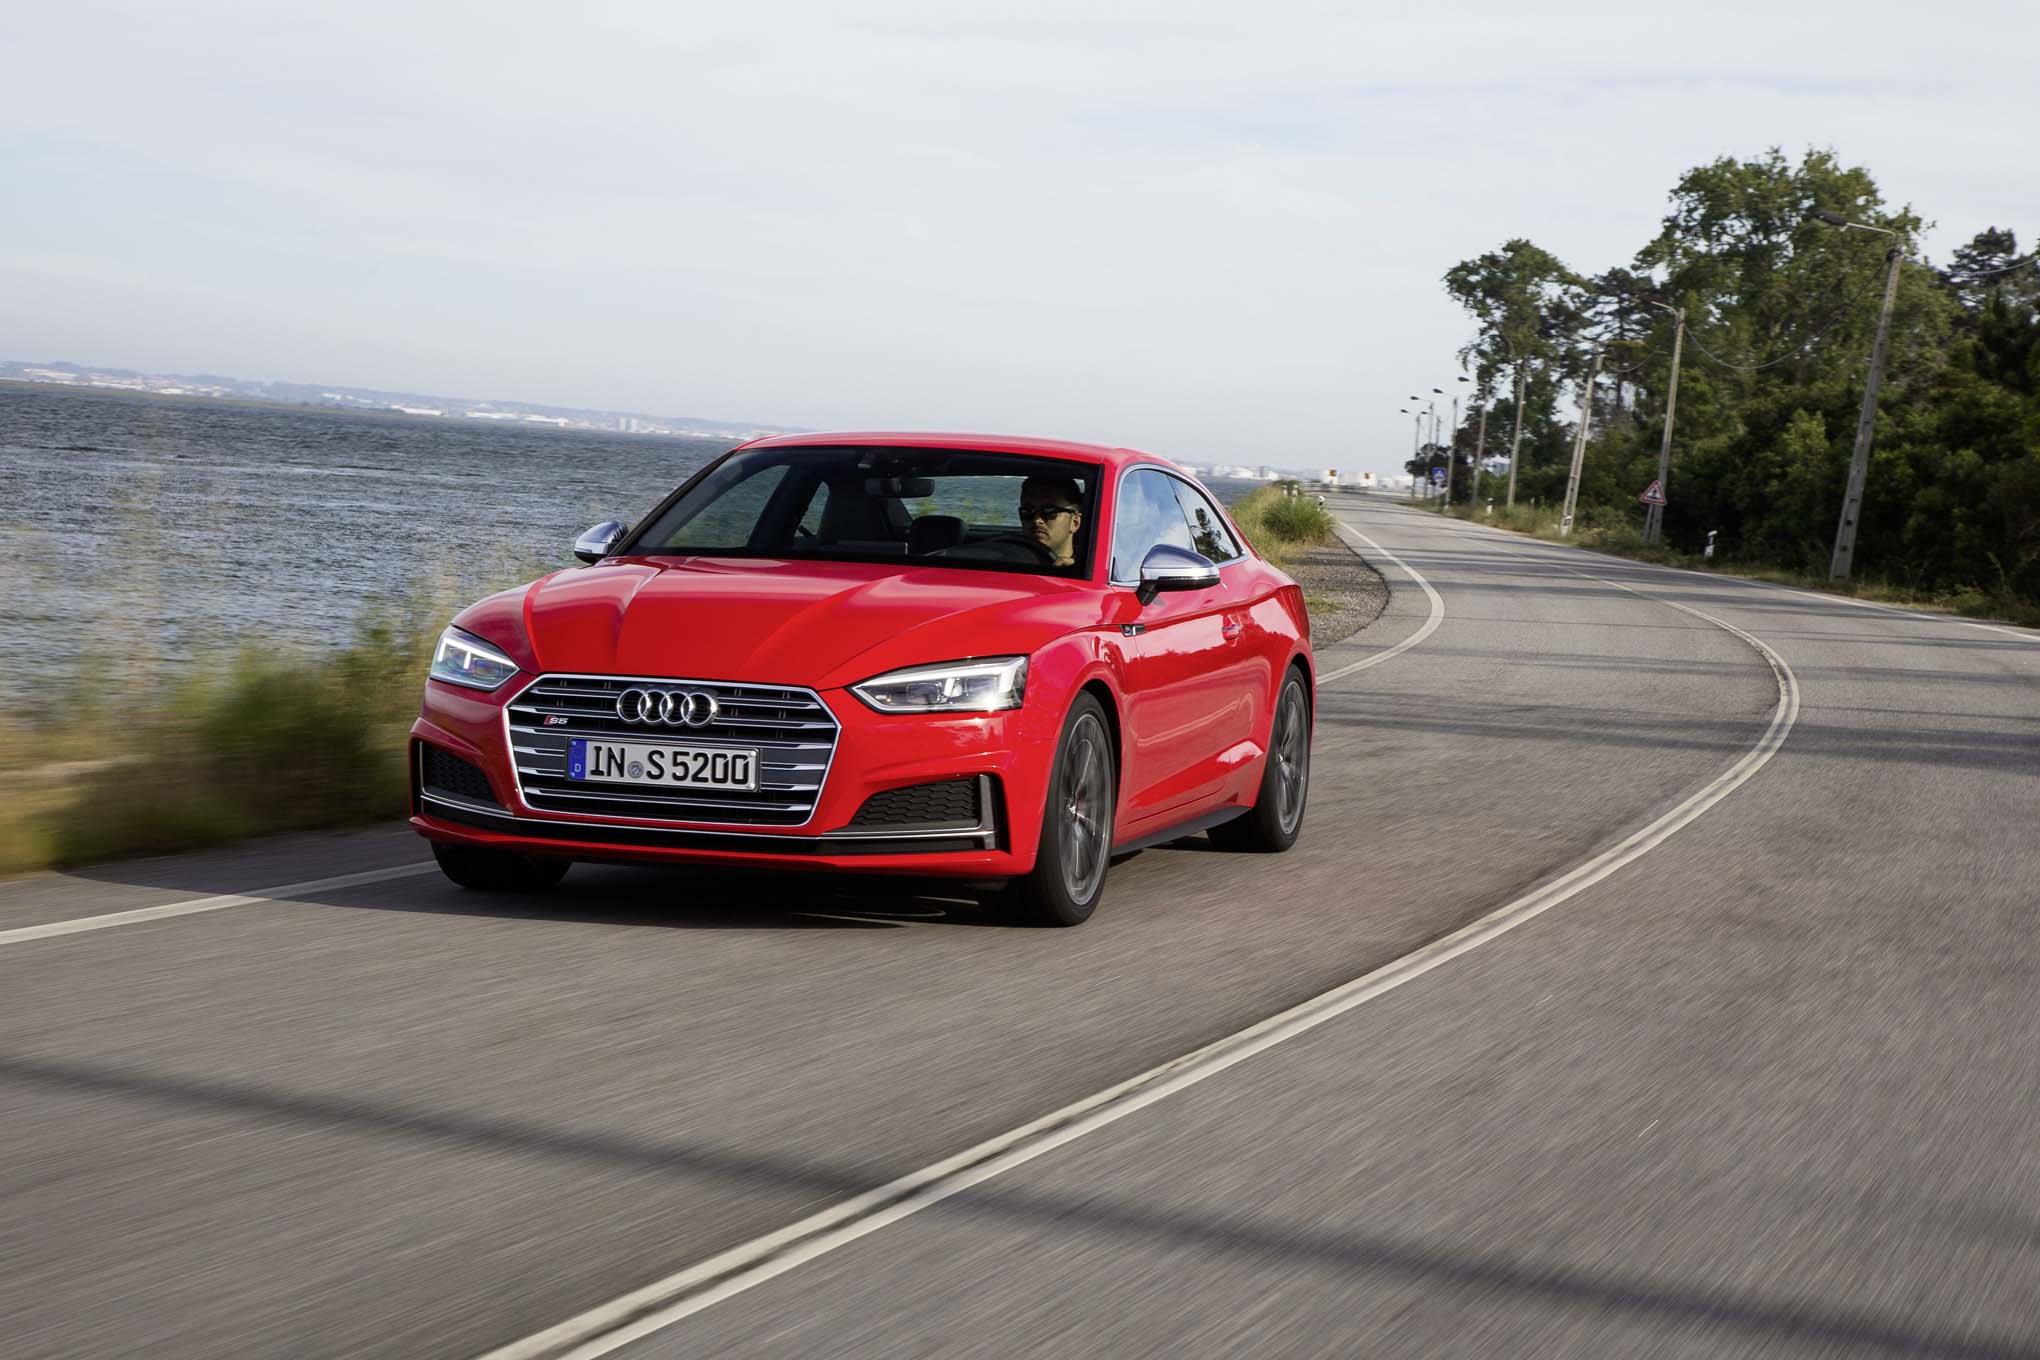 2018 Audi S5 Front Three Quarter In Motion 04